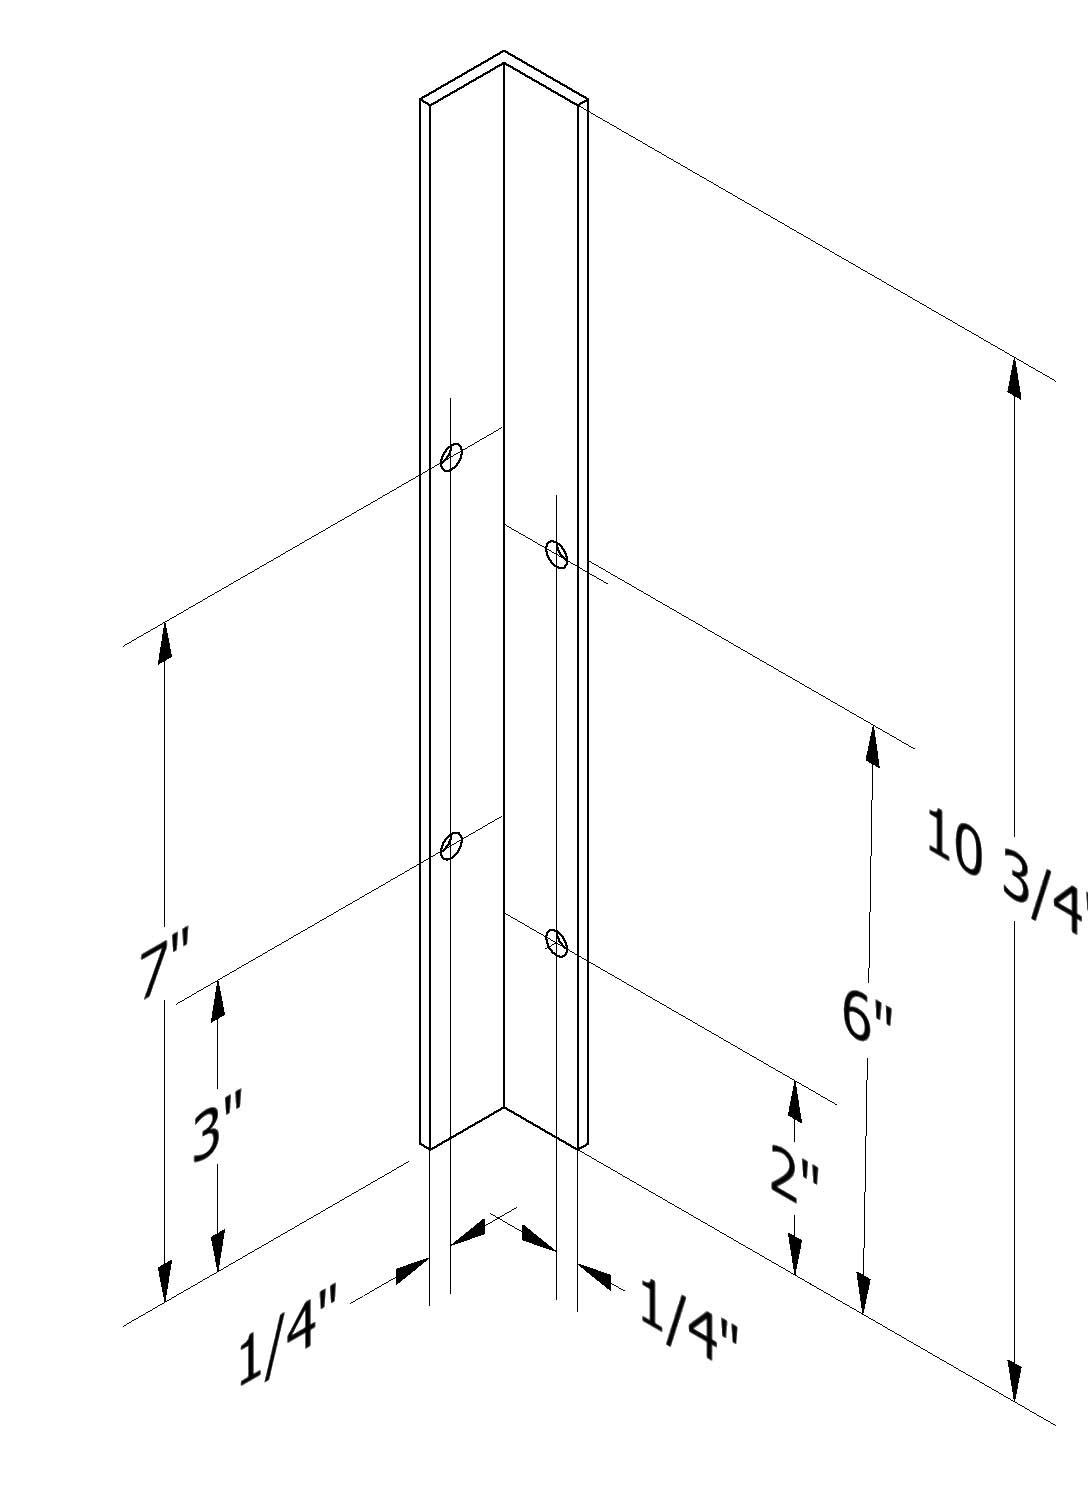 downdraft corner drawing.jpg